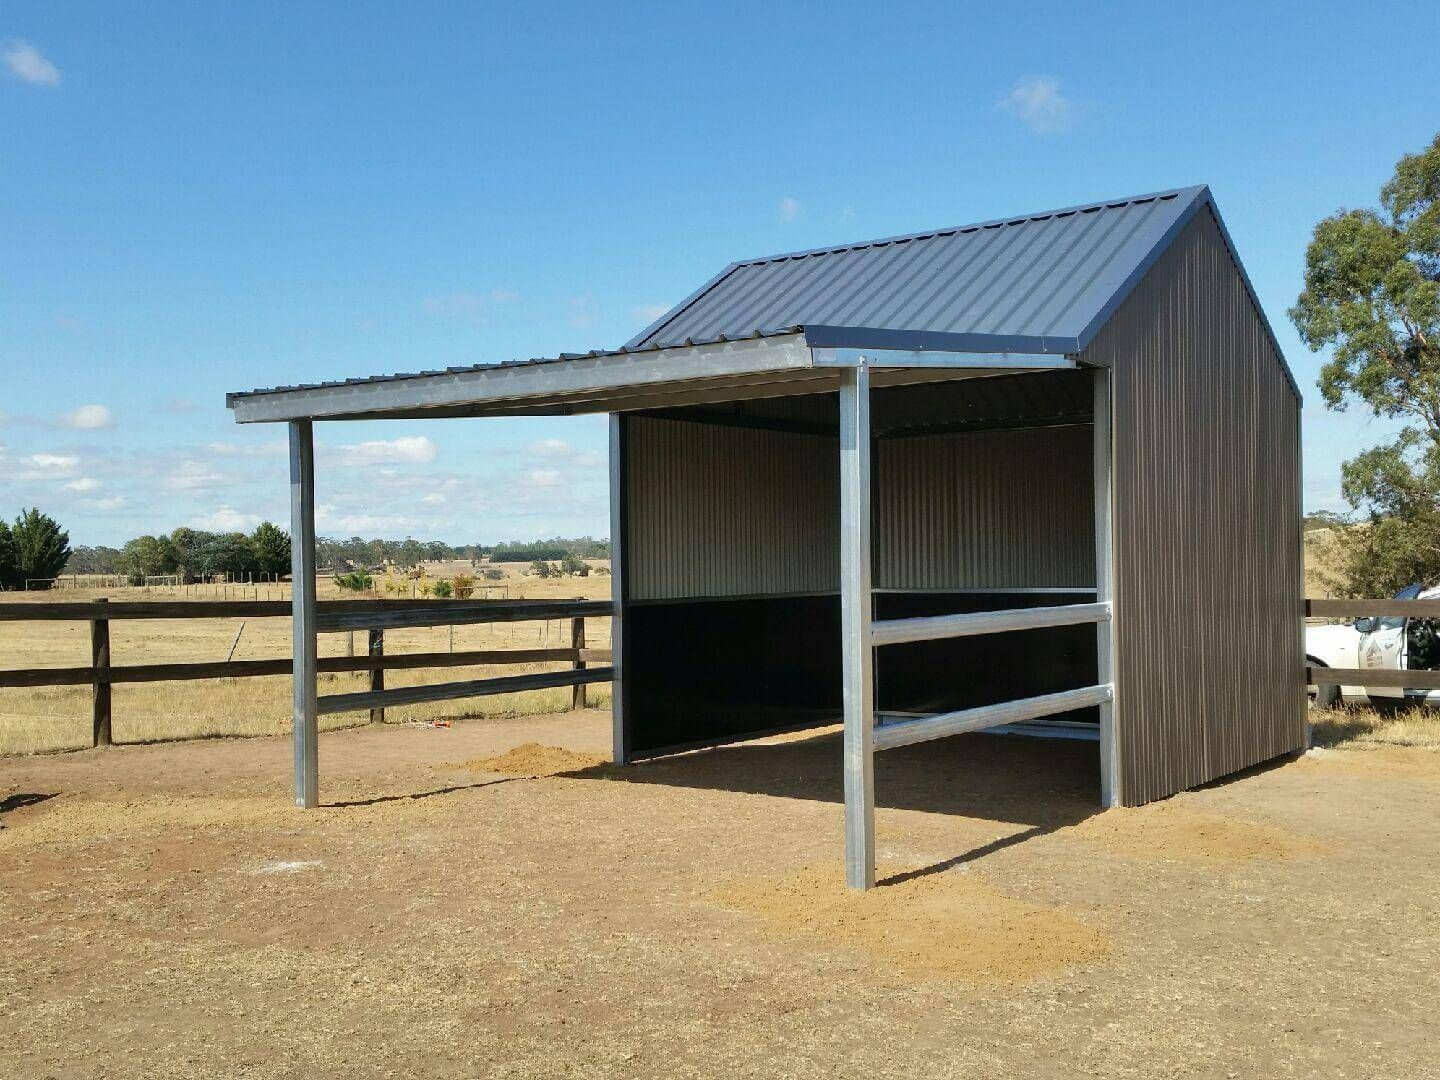 Horse Shelters Horse Loose Box Horse Stalls Paddock Shelters Horse Shelter Horse Paddock Horse Stalls